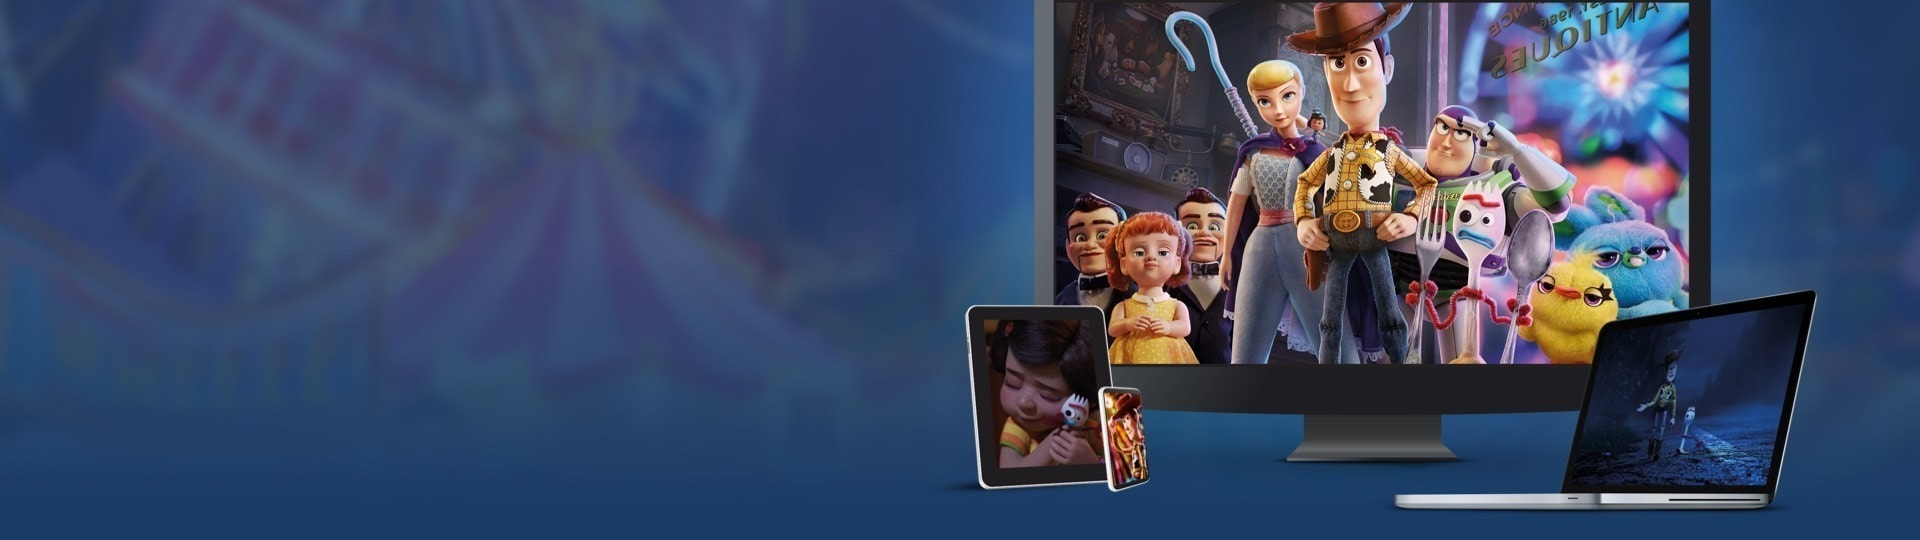 Toy Story 4 Download and keep